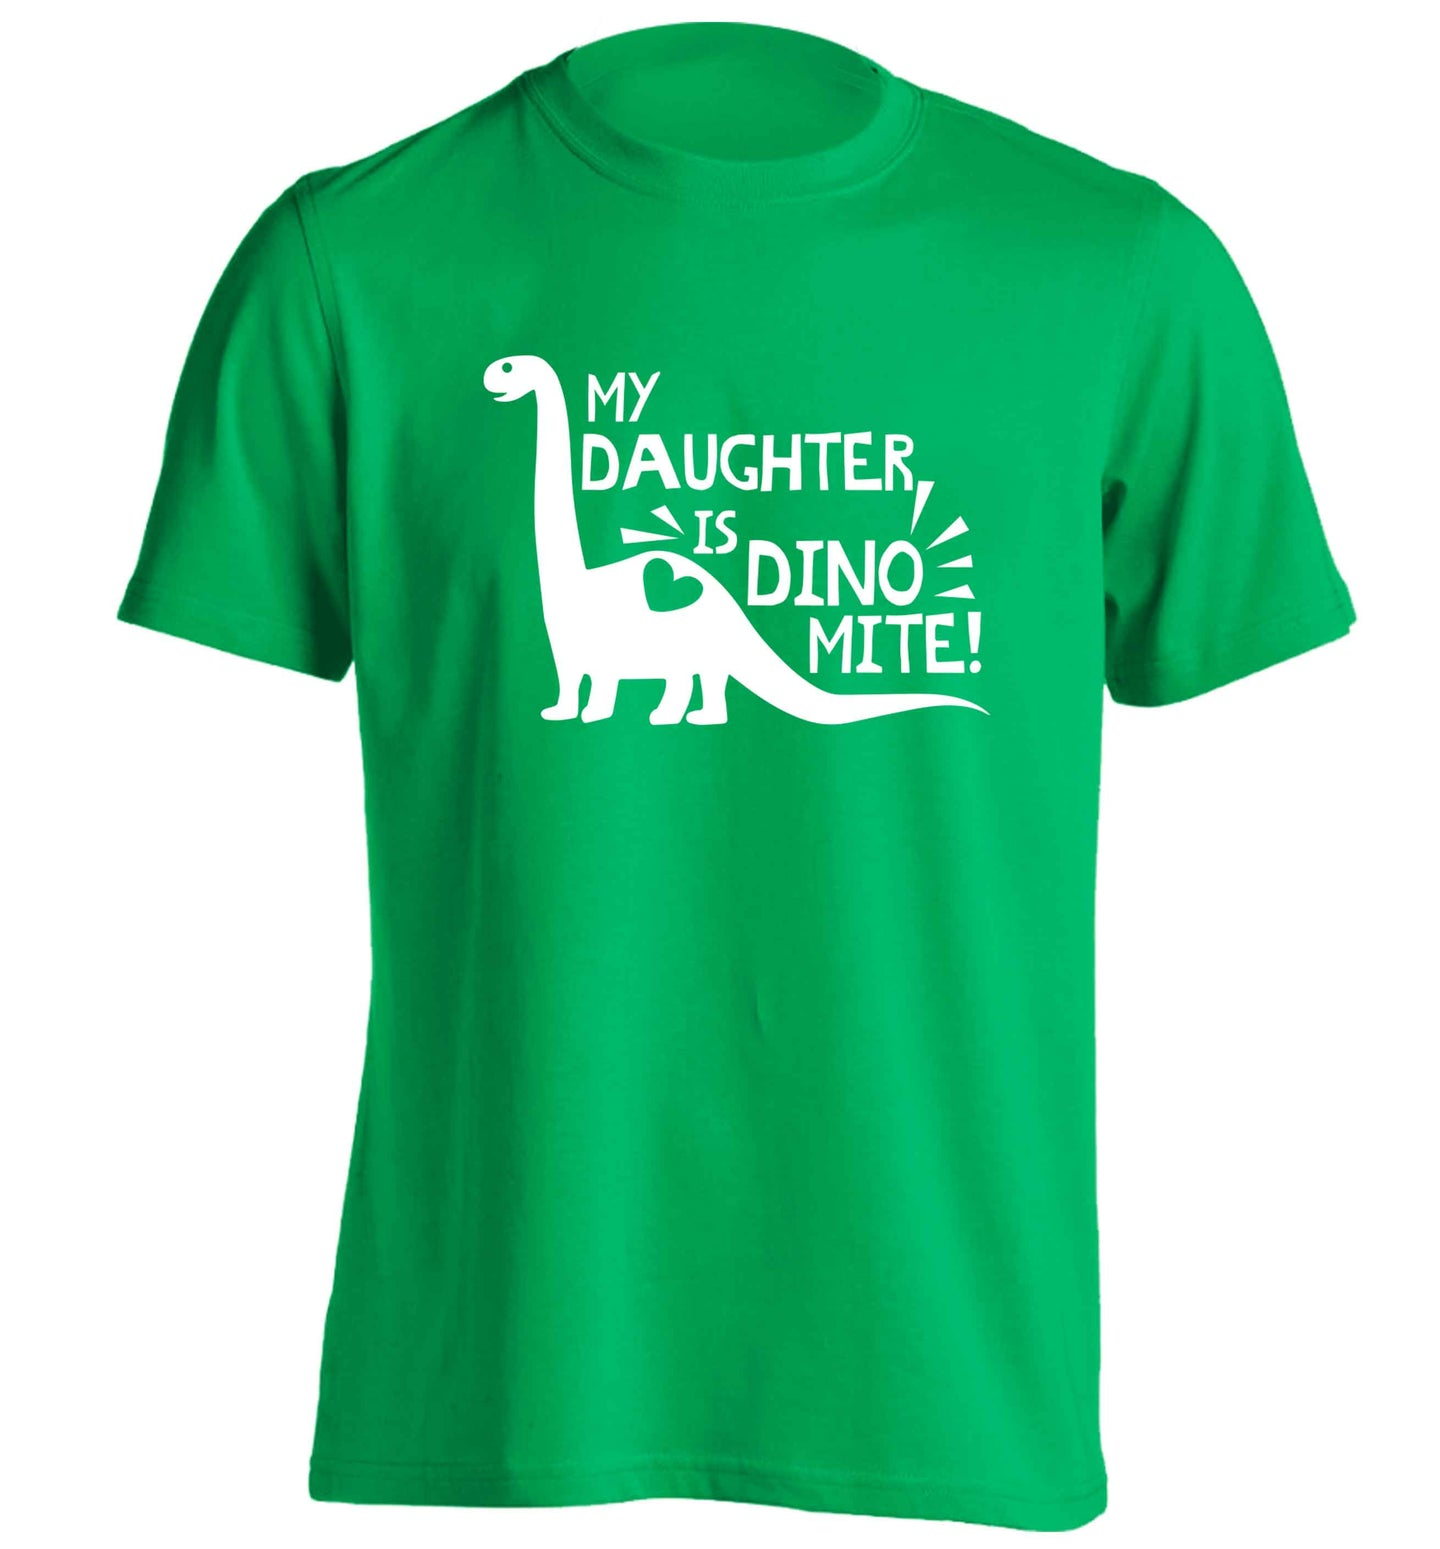 My daughter is dinomite! adults unisex green Tshirt 2XL